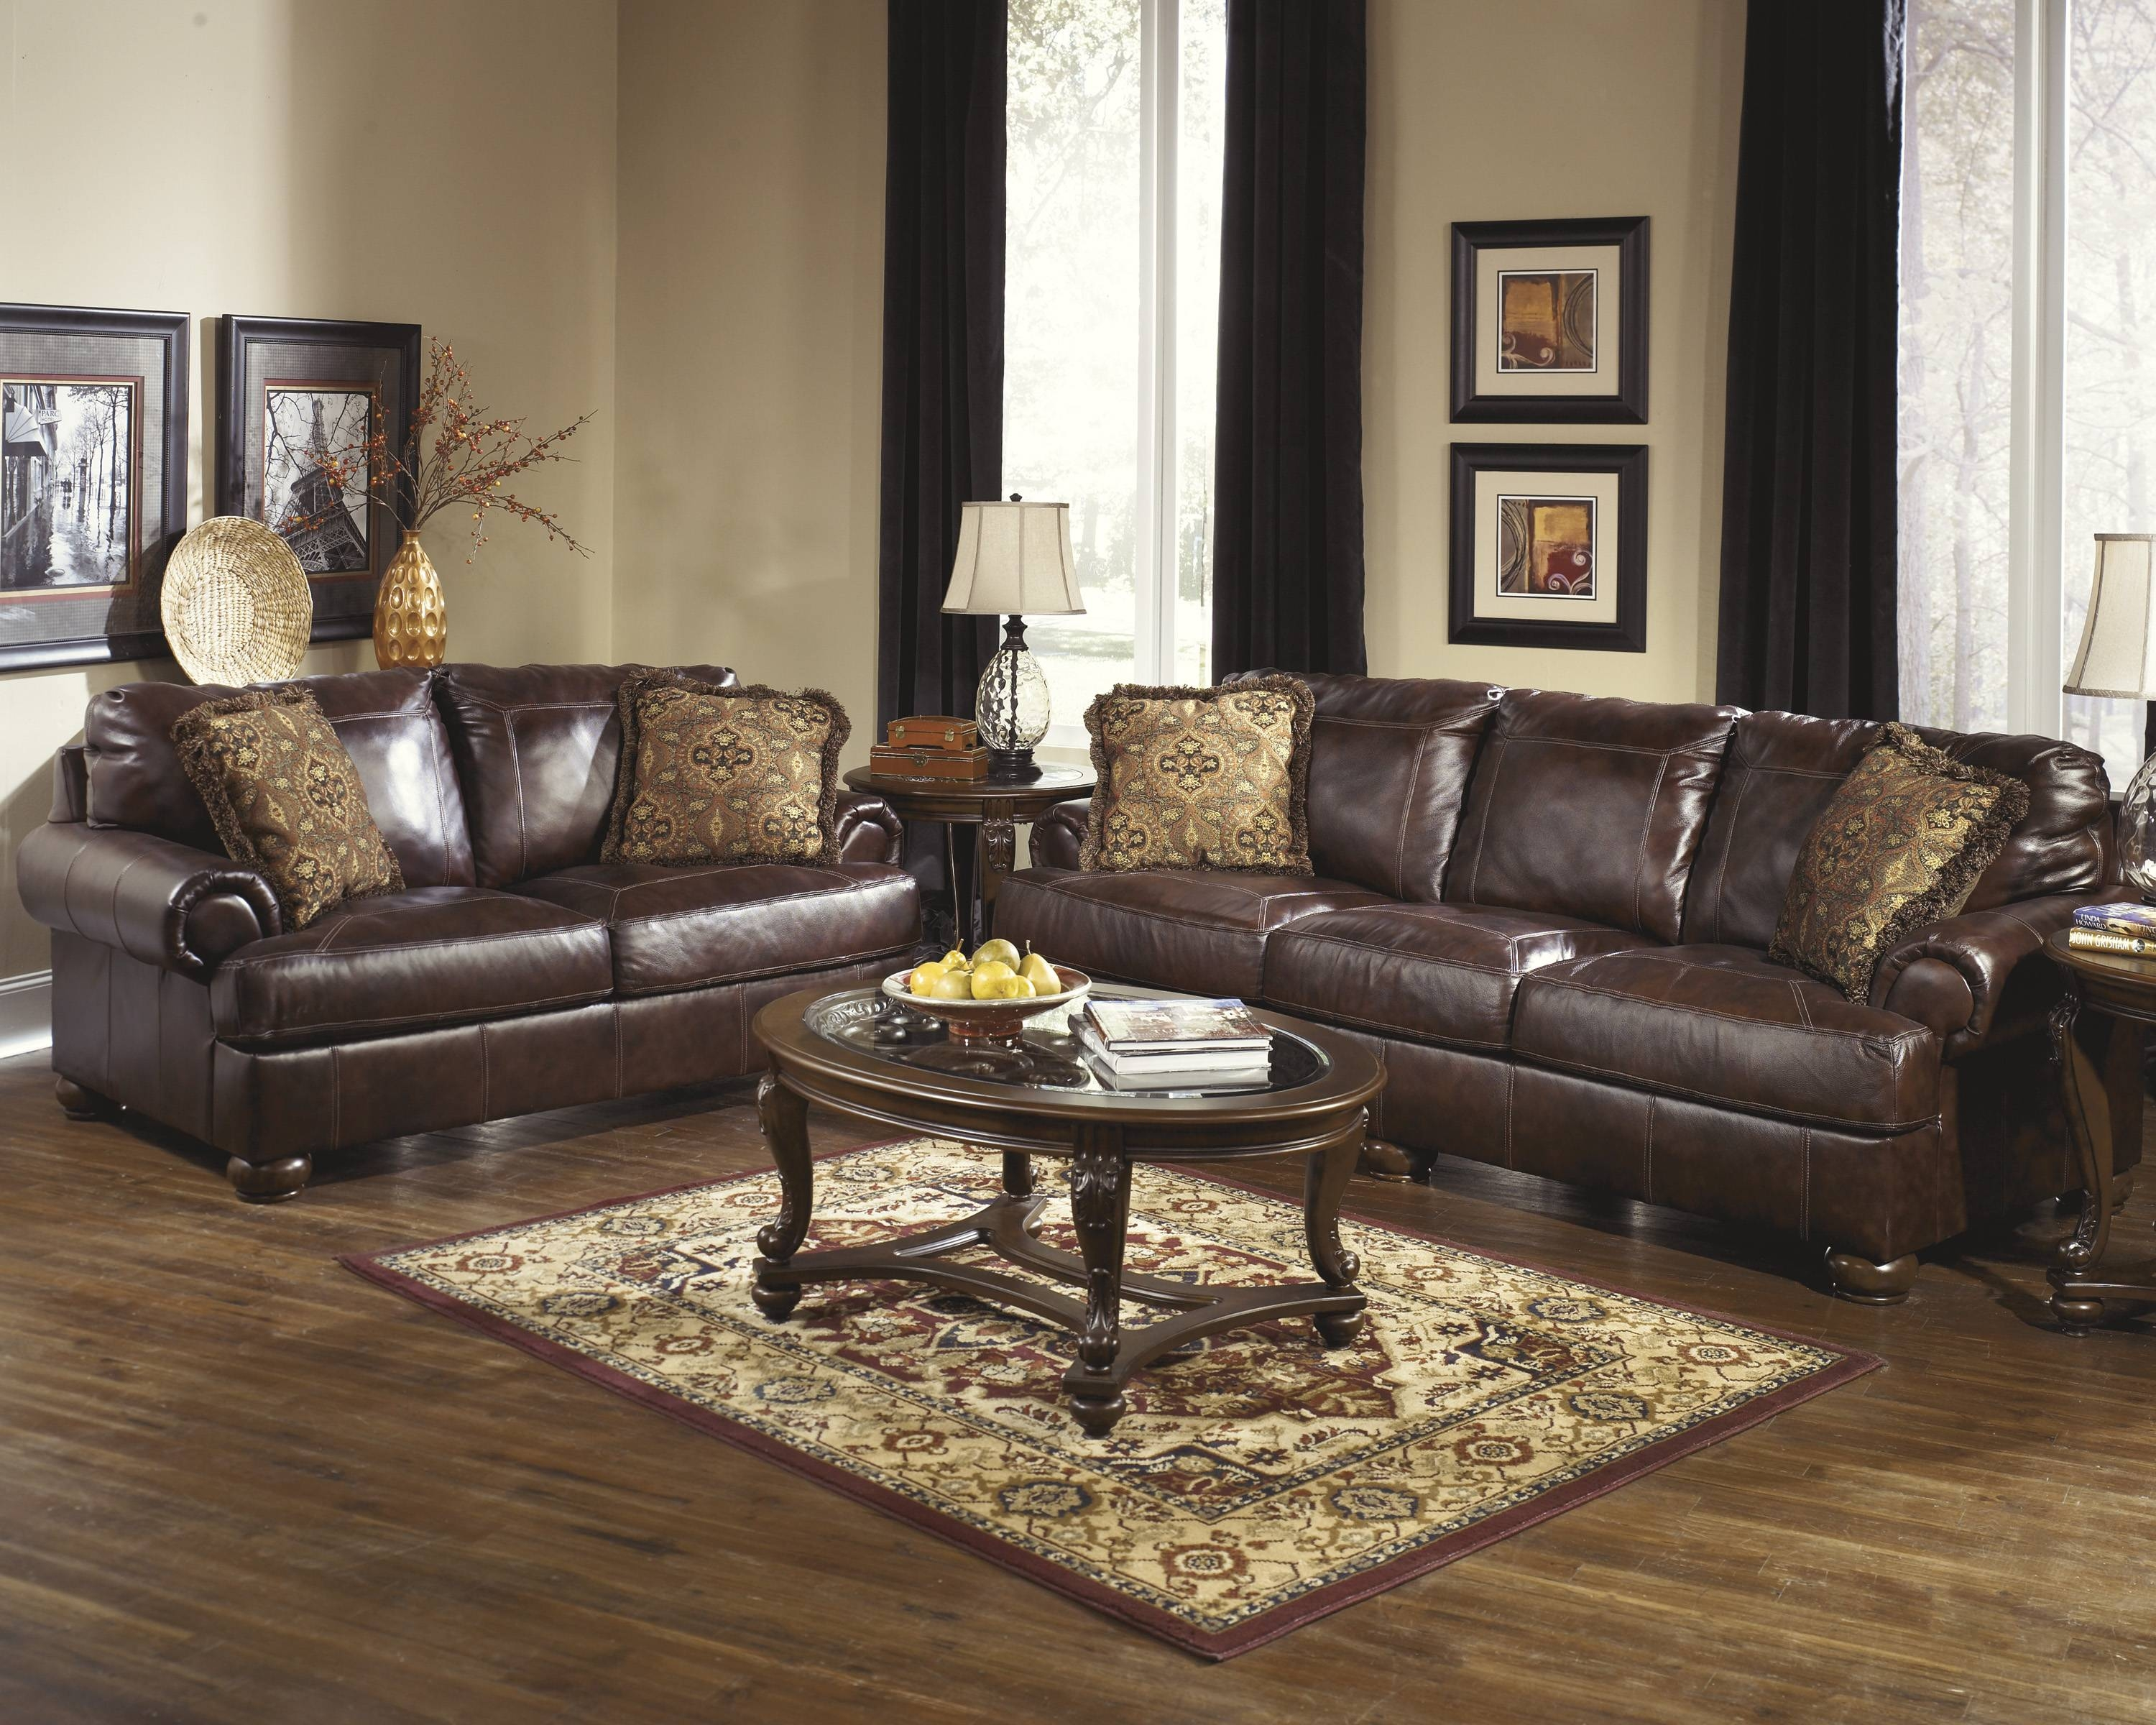 Cheap Leather Sofas Glendale, Ca - A Star Furniture with regard to Leather Sofas (Image 6 of 30)